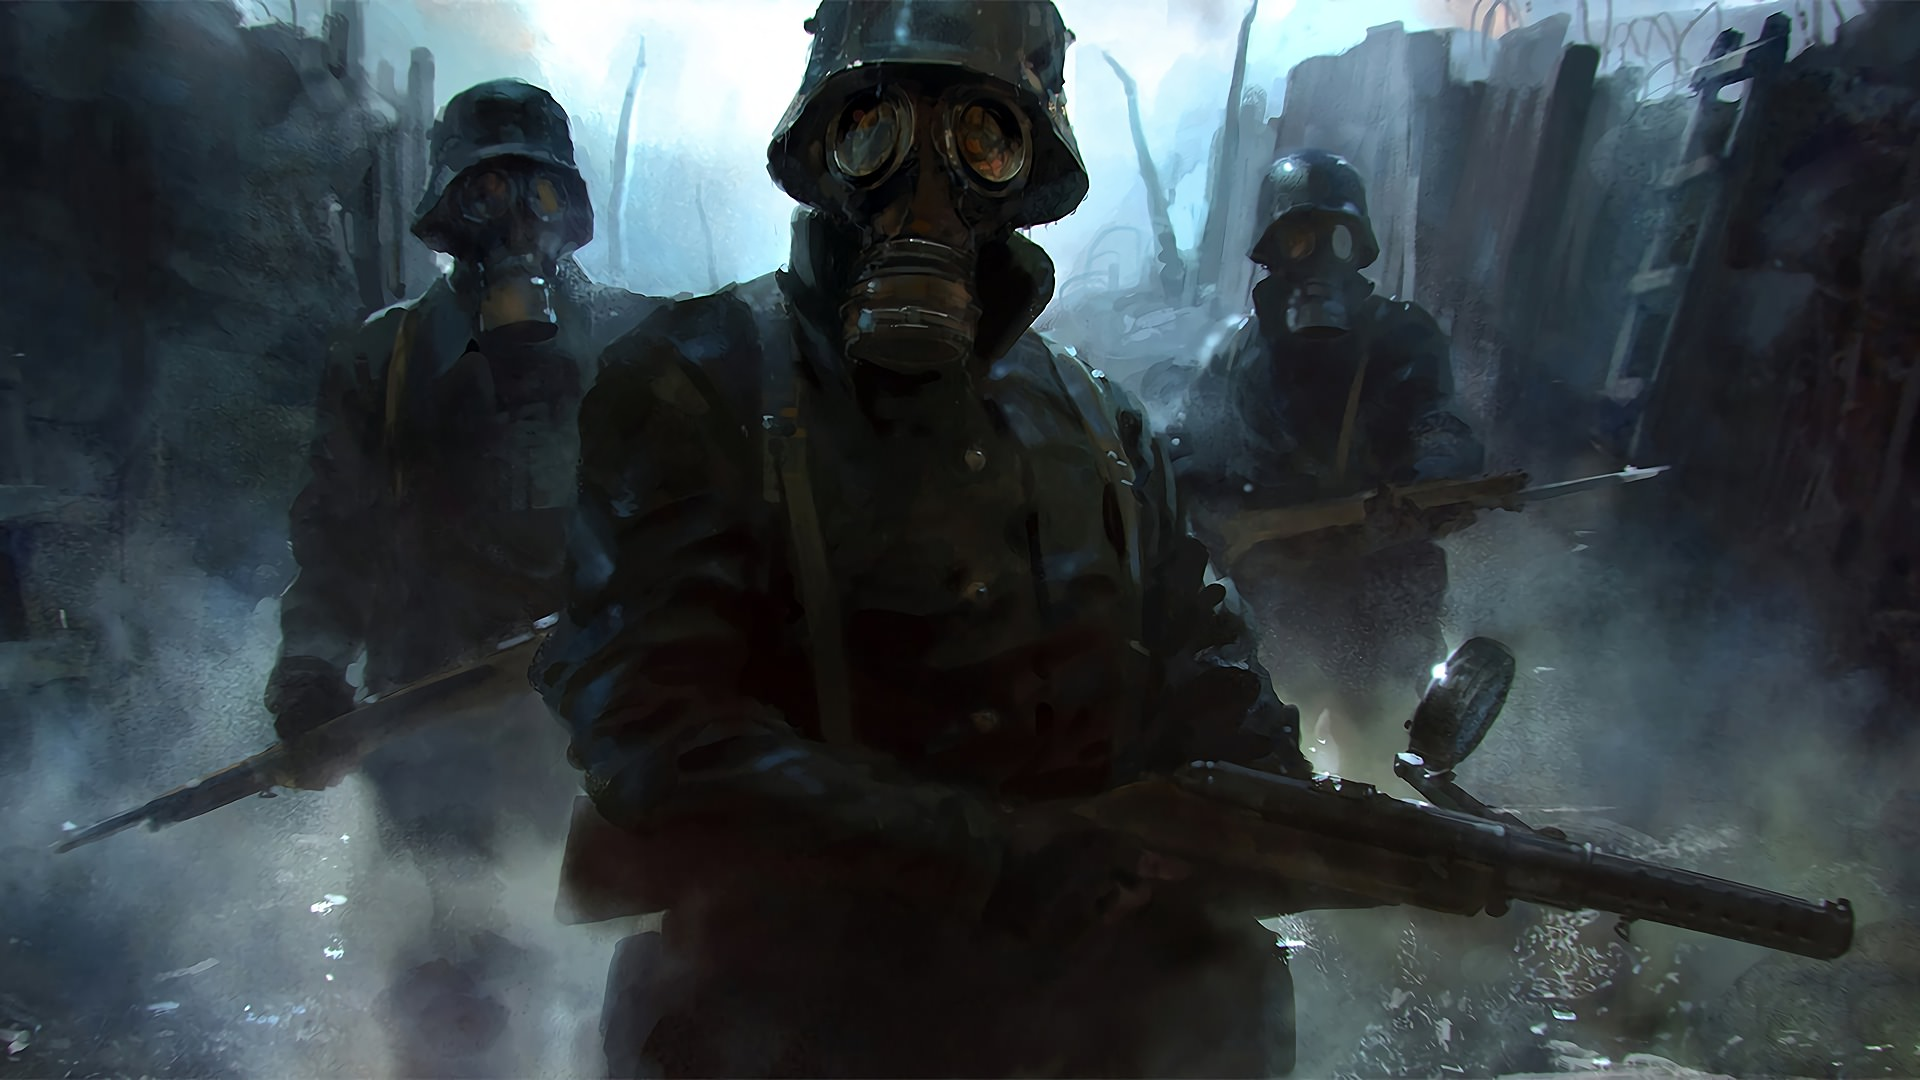 Gas Mask Soldier Wallpapers Top Free Gas Mask Soldier